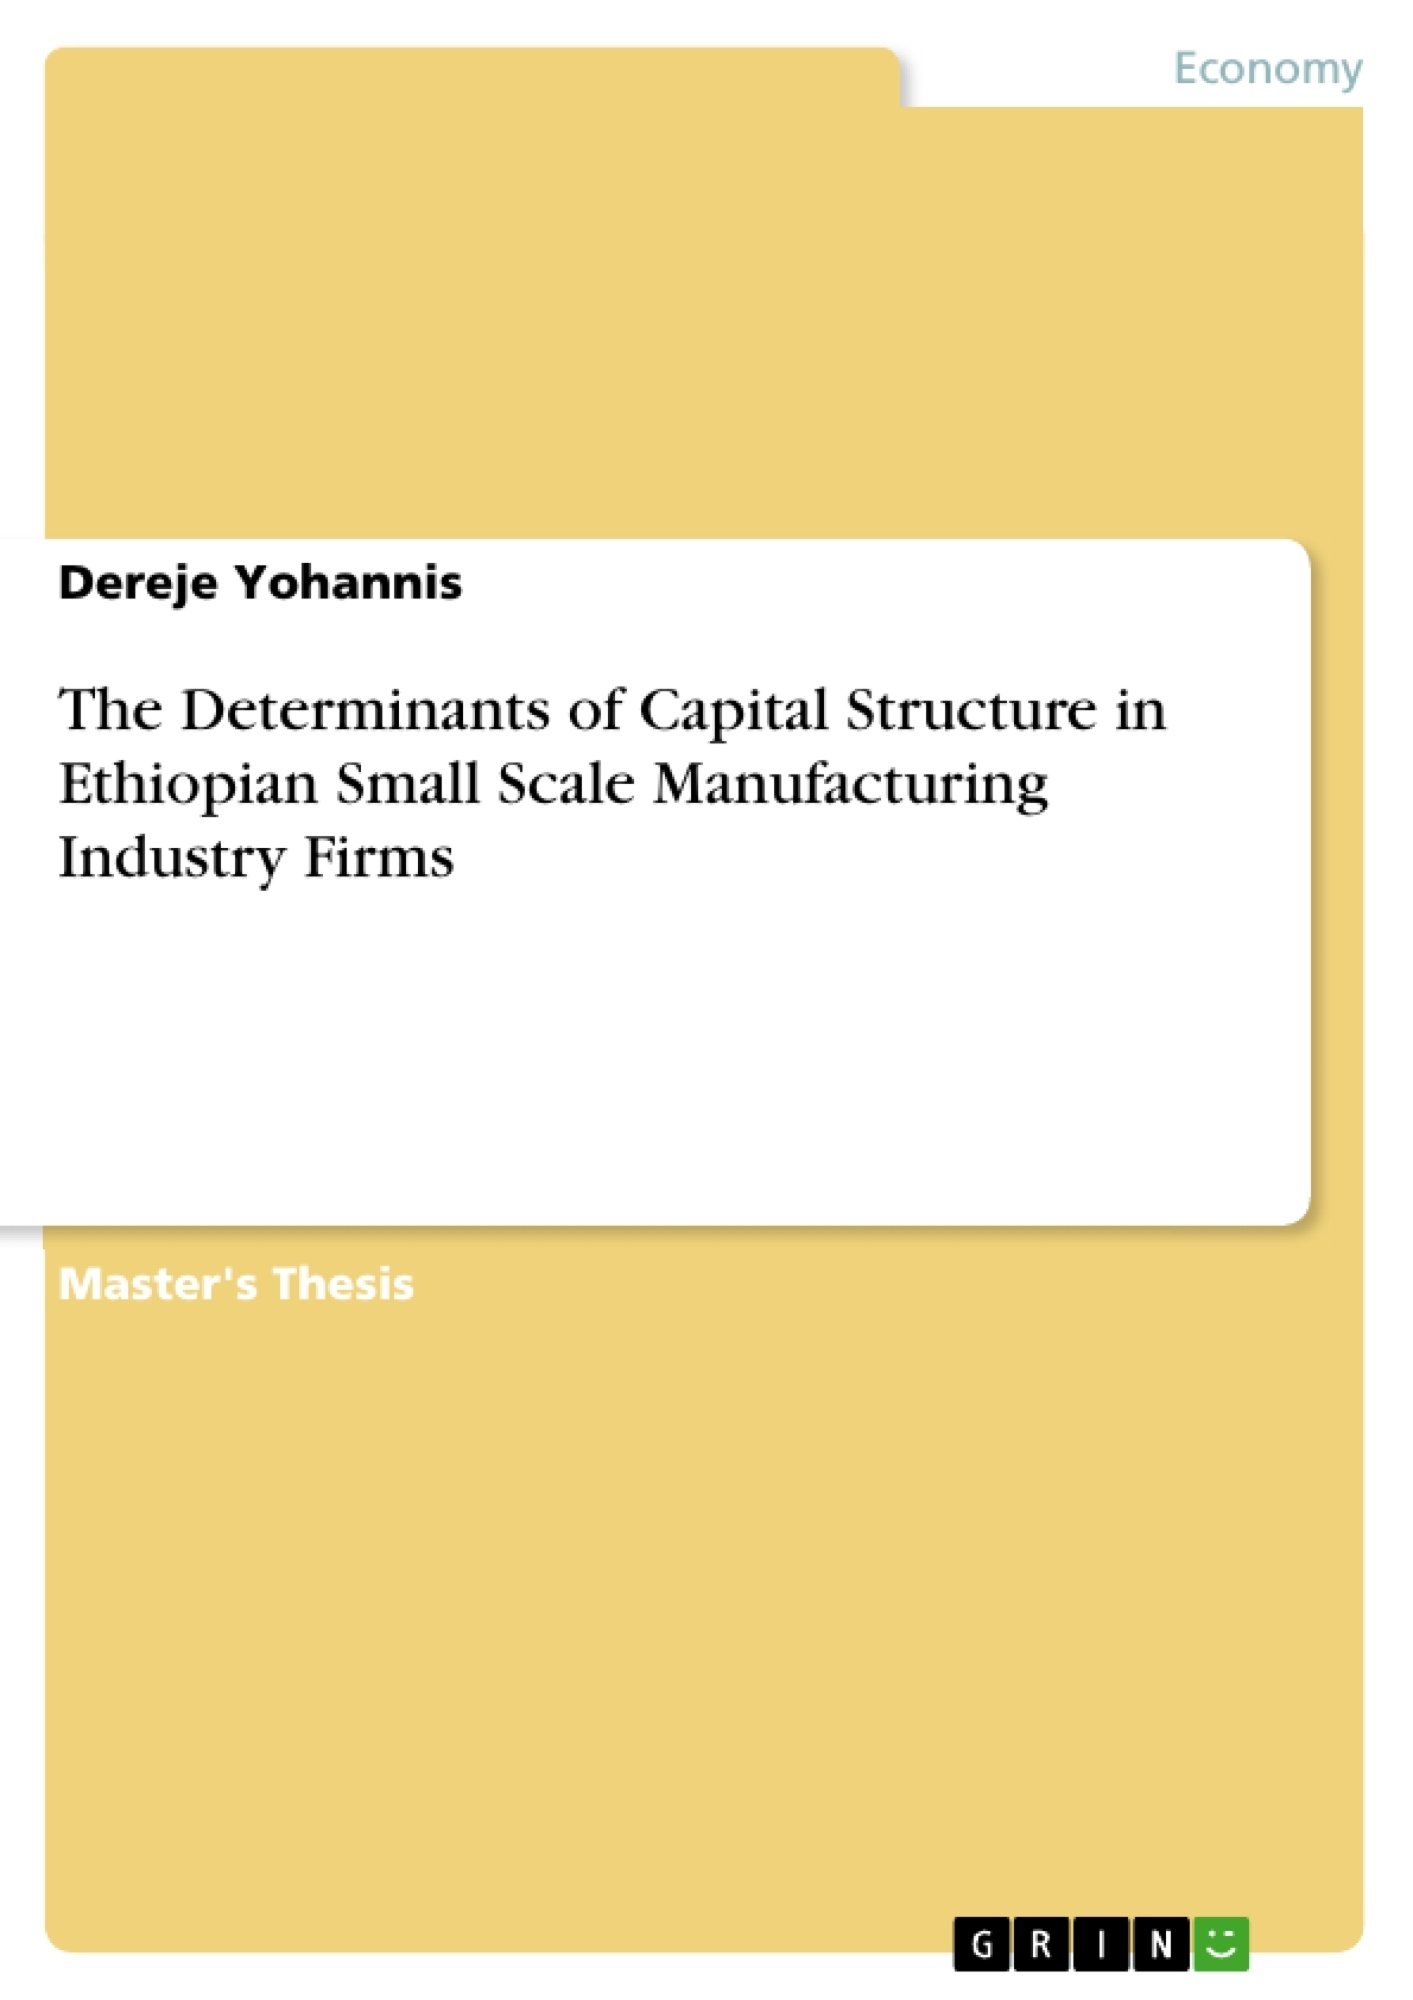 Title: The Determinants of Capital Structure in Ethiopian Small Scale Manufacturing Industry Firms